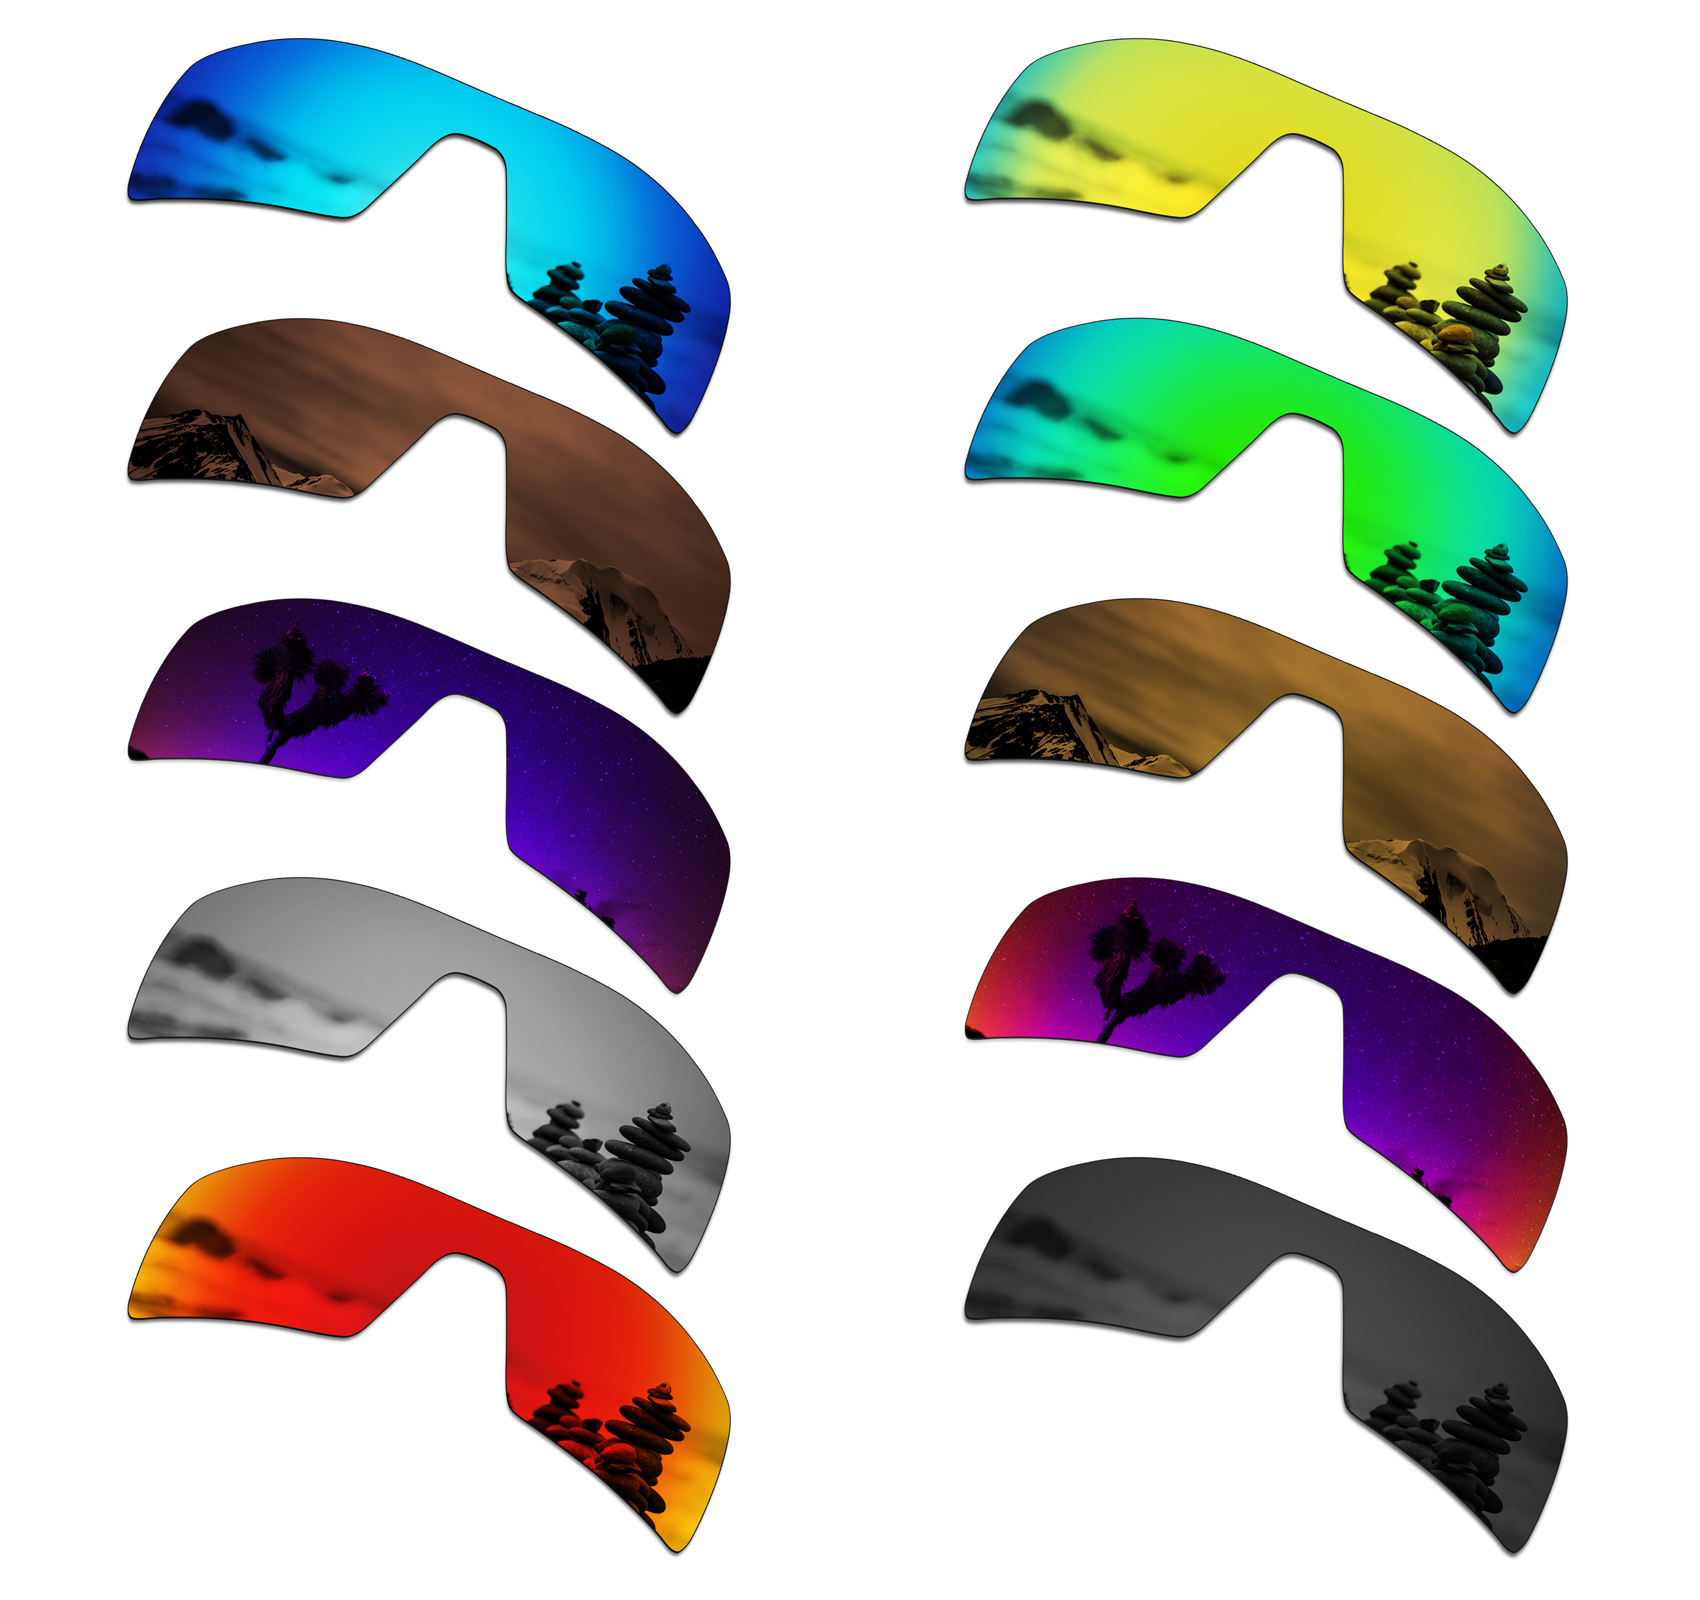 SmartVLT Polarized Replacement Lenses For Oakley Oil Rig Sunglasses - Multiple Options